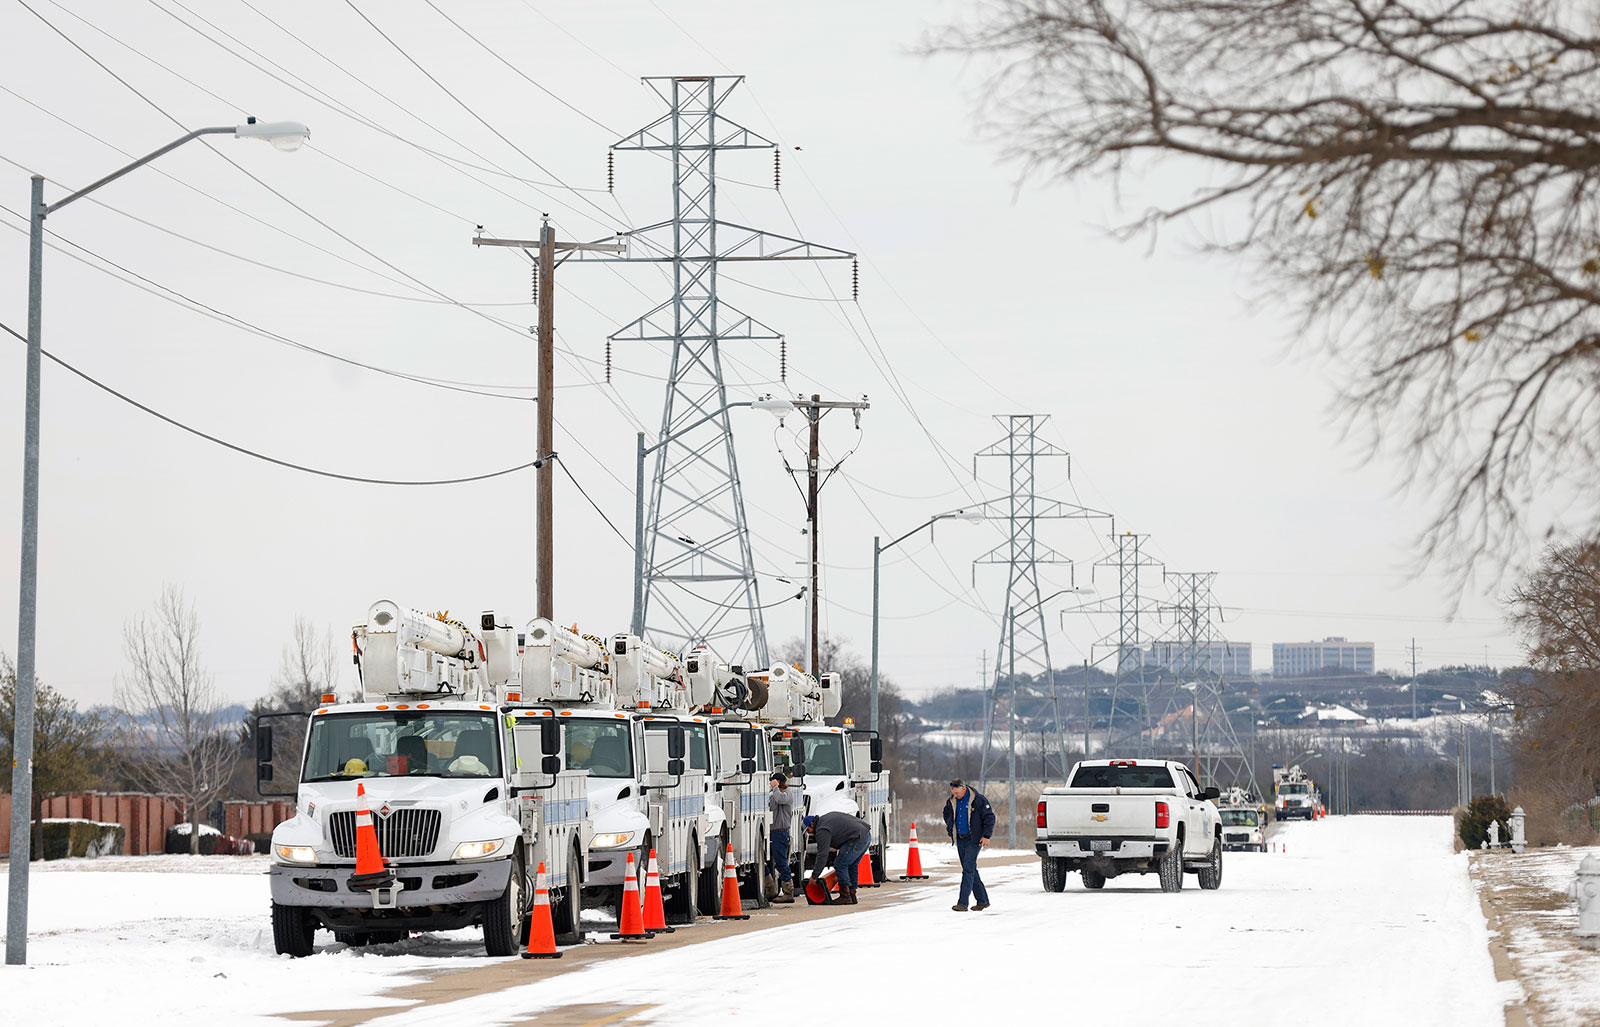 Pike Electric service trucks line up in Fort Worth, Texas, on February 16.